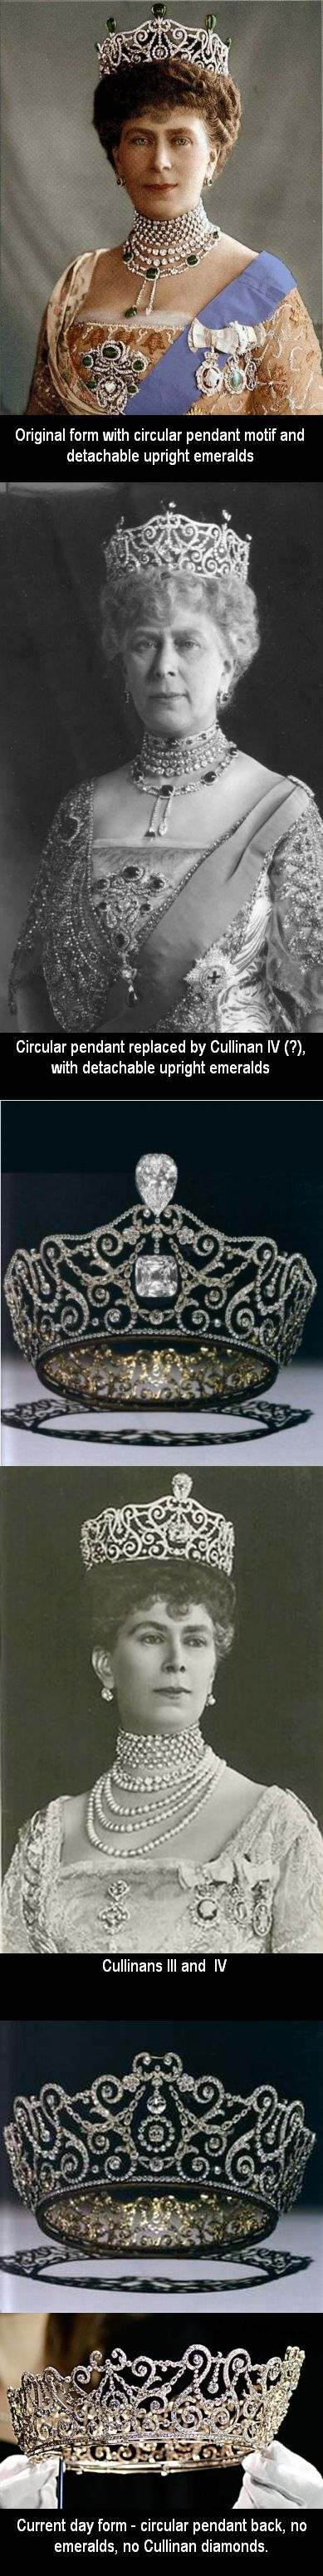 "The Delhi Durbar Tiara - by Garrards, for Queen Mary for the Delhi Durbar on December 12,1911. Durbar is Hindi, for a 'ceremonial gathering to pay homage'. The gathering was to install King George V and Queen Mary as Emperor and Empress of India. King George V admired this piece and referred to it as ""May's best tiara"". It has been worn in a variety of  ways as shown here."